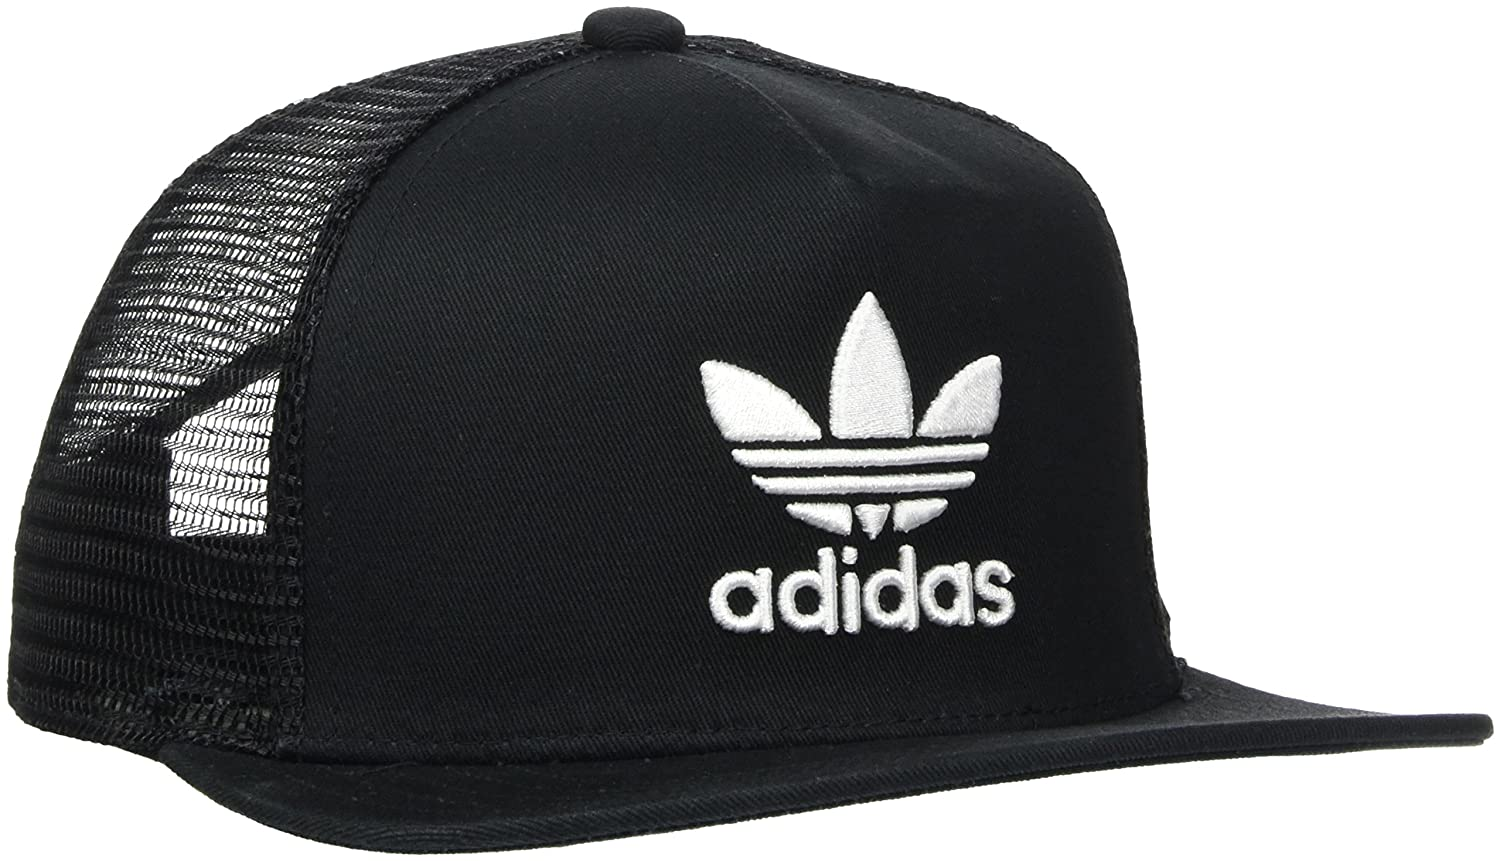 1a58de3e adidas Kid's Trefoil Trucker Cap, Black/White, One Size: Amazon.co.uk:  Sports & Outdoors